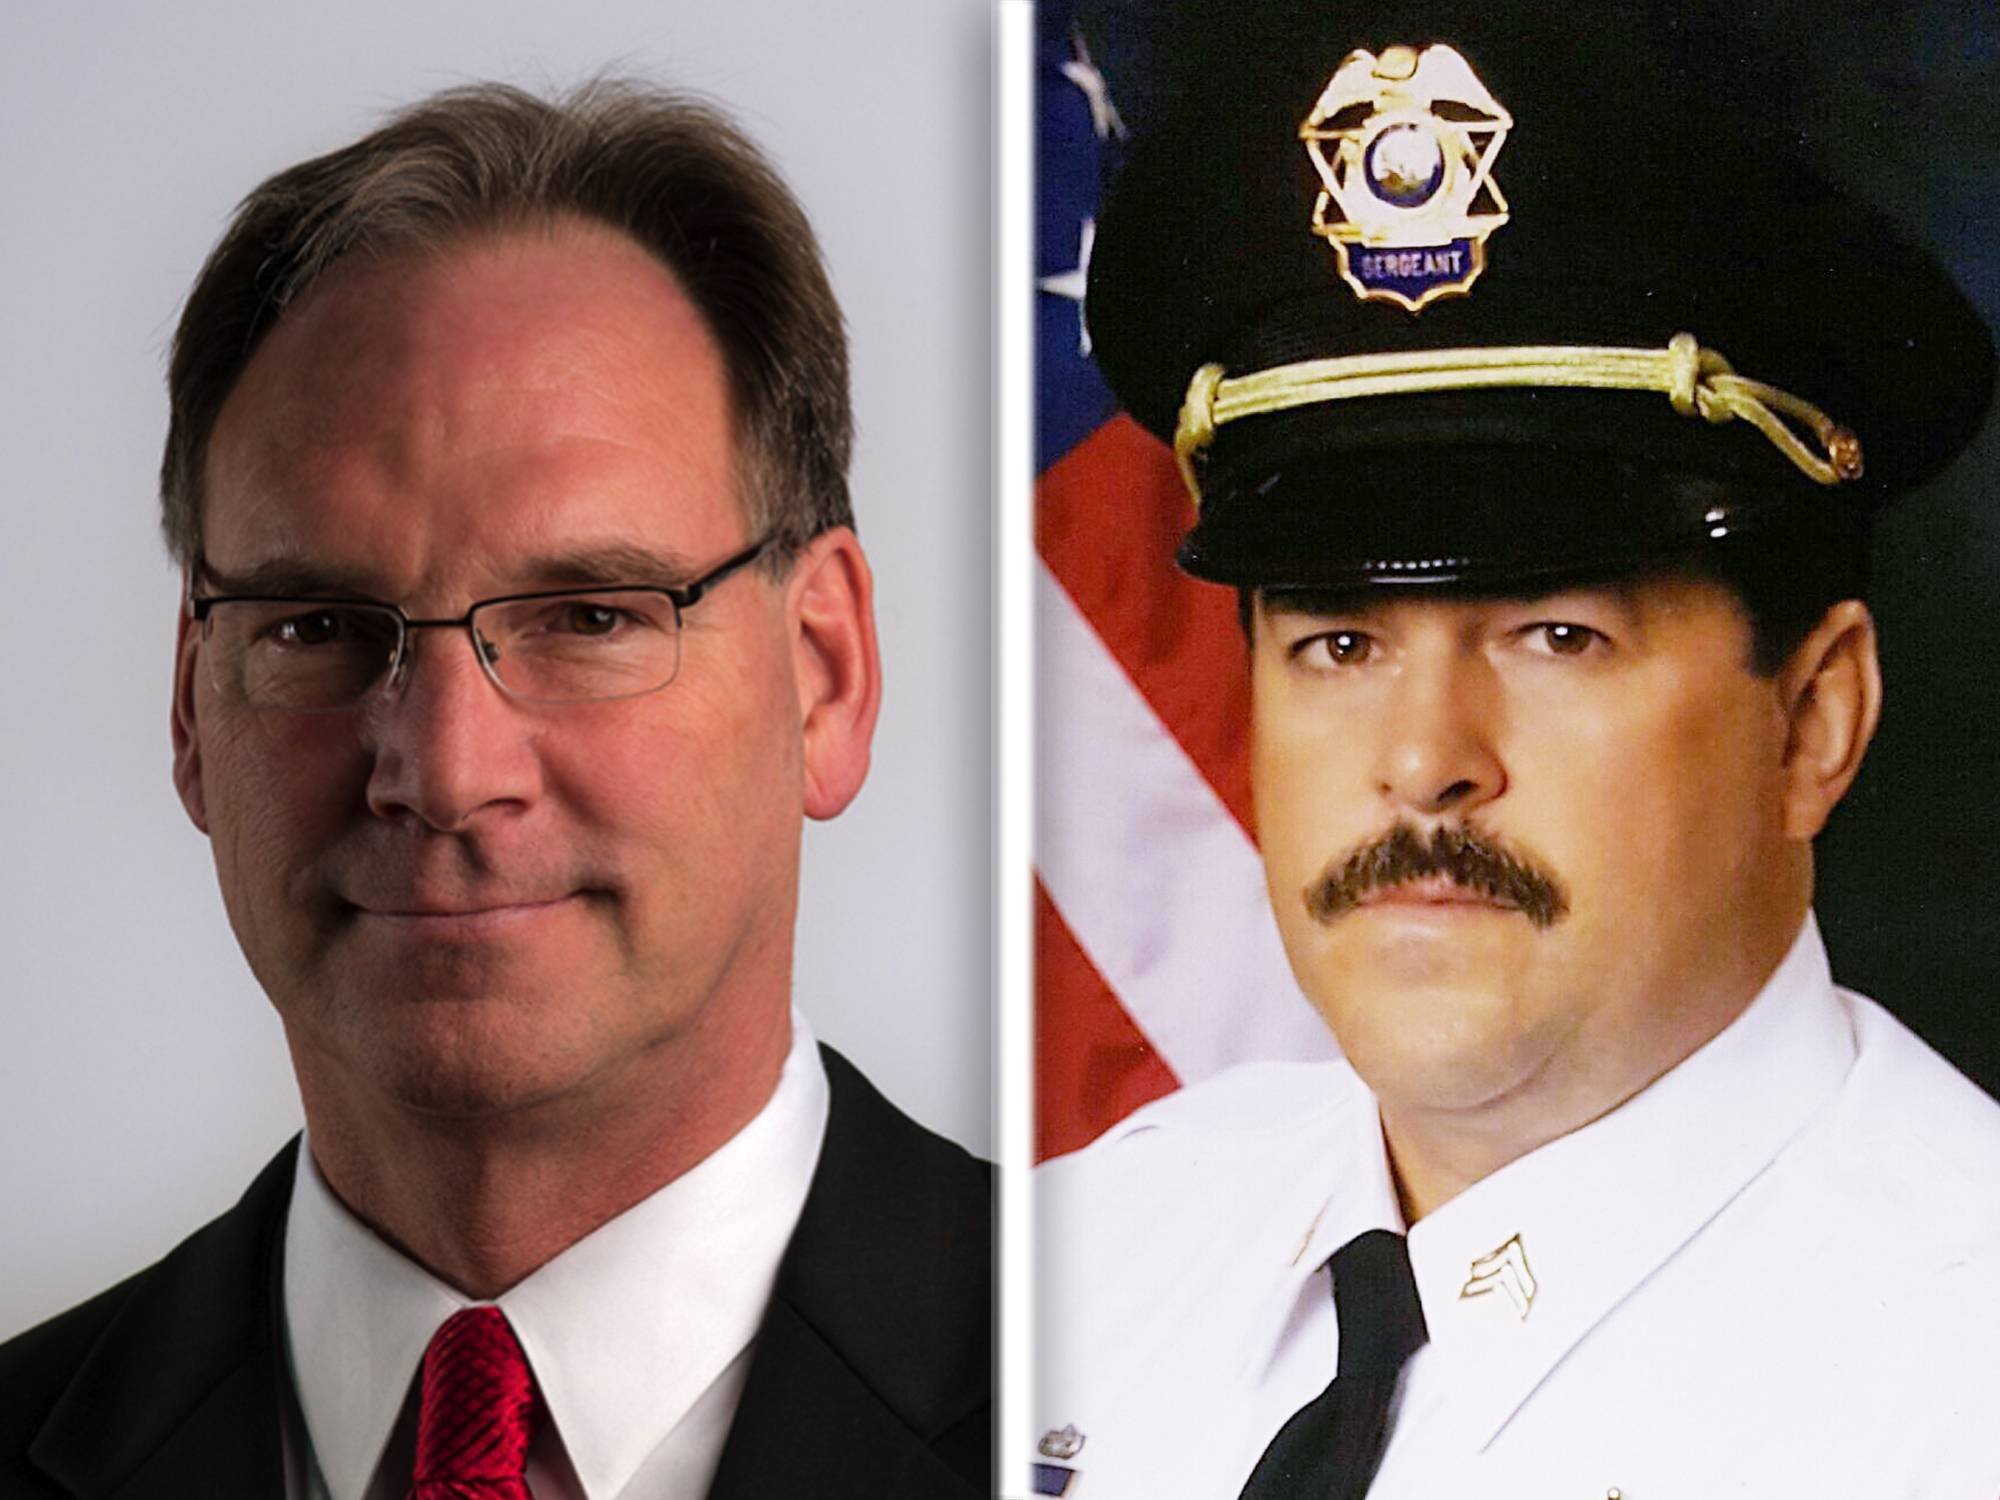 Don Kramer, left, and Kevin Tindall are Republican candidates for Kane County sheriff.